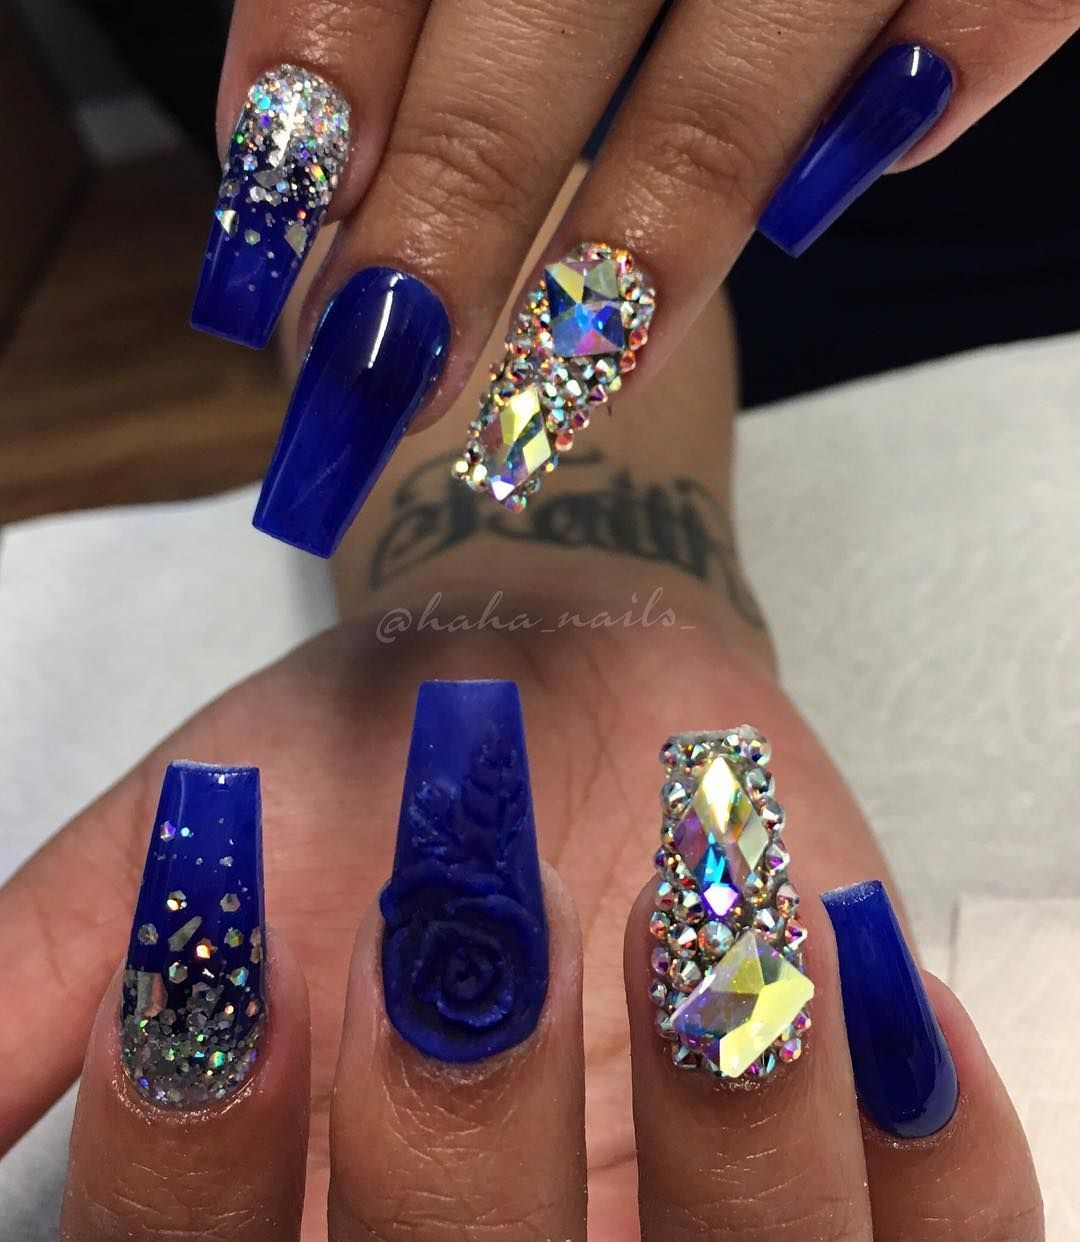 Royal Blue Rose And Mirror Glitter Nails 10 Impressive Coffin